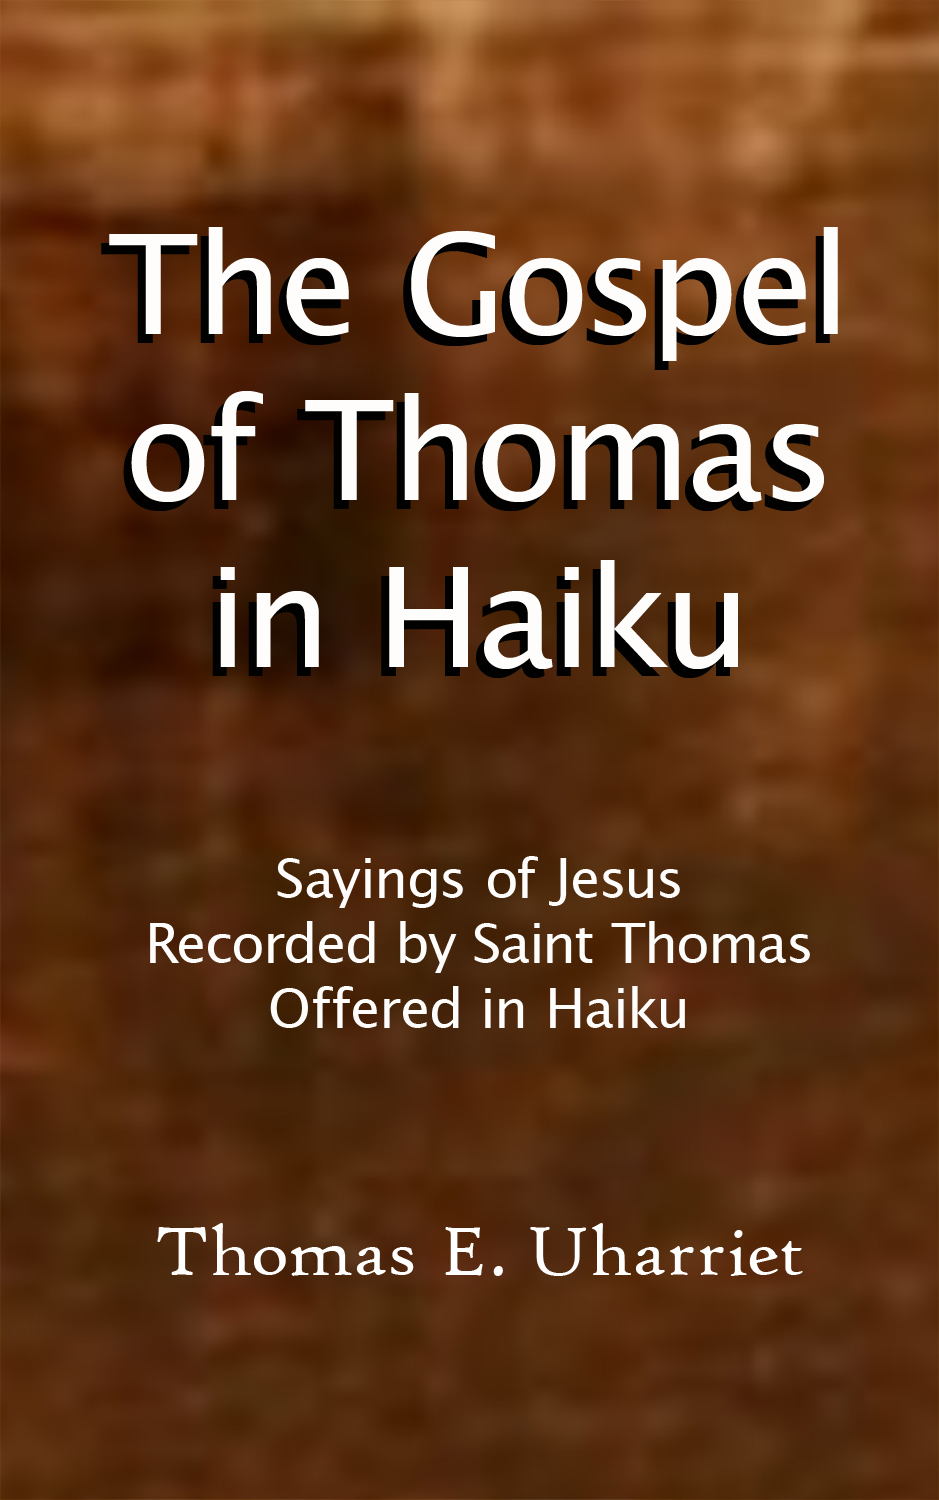 The Gospel of Thommas